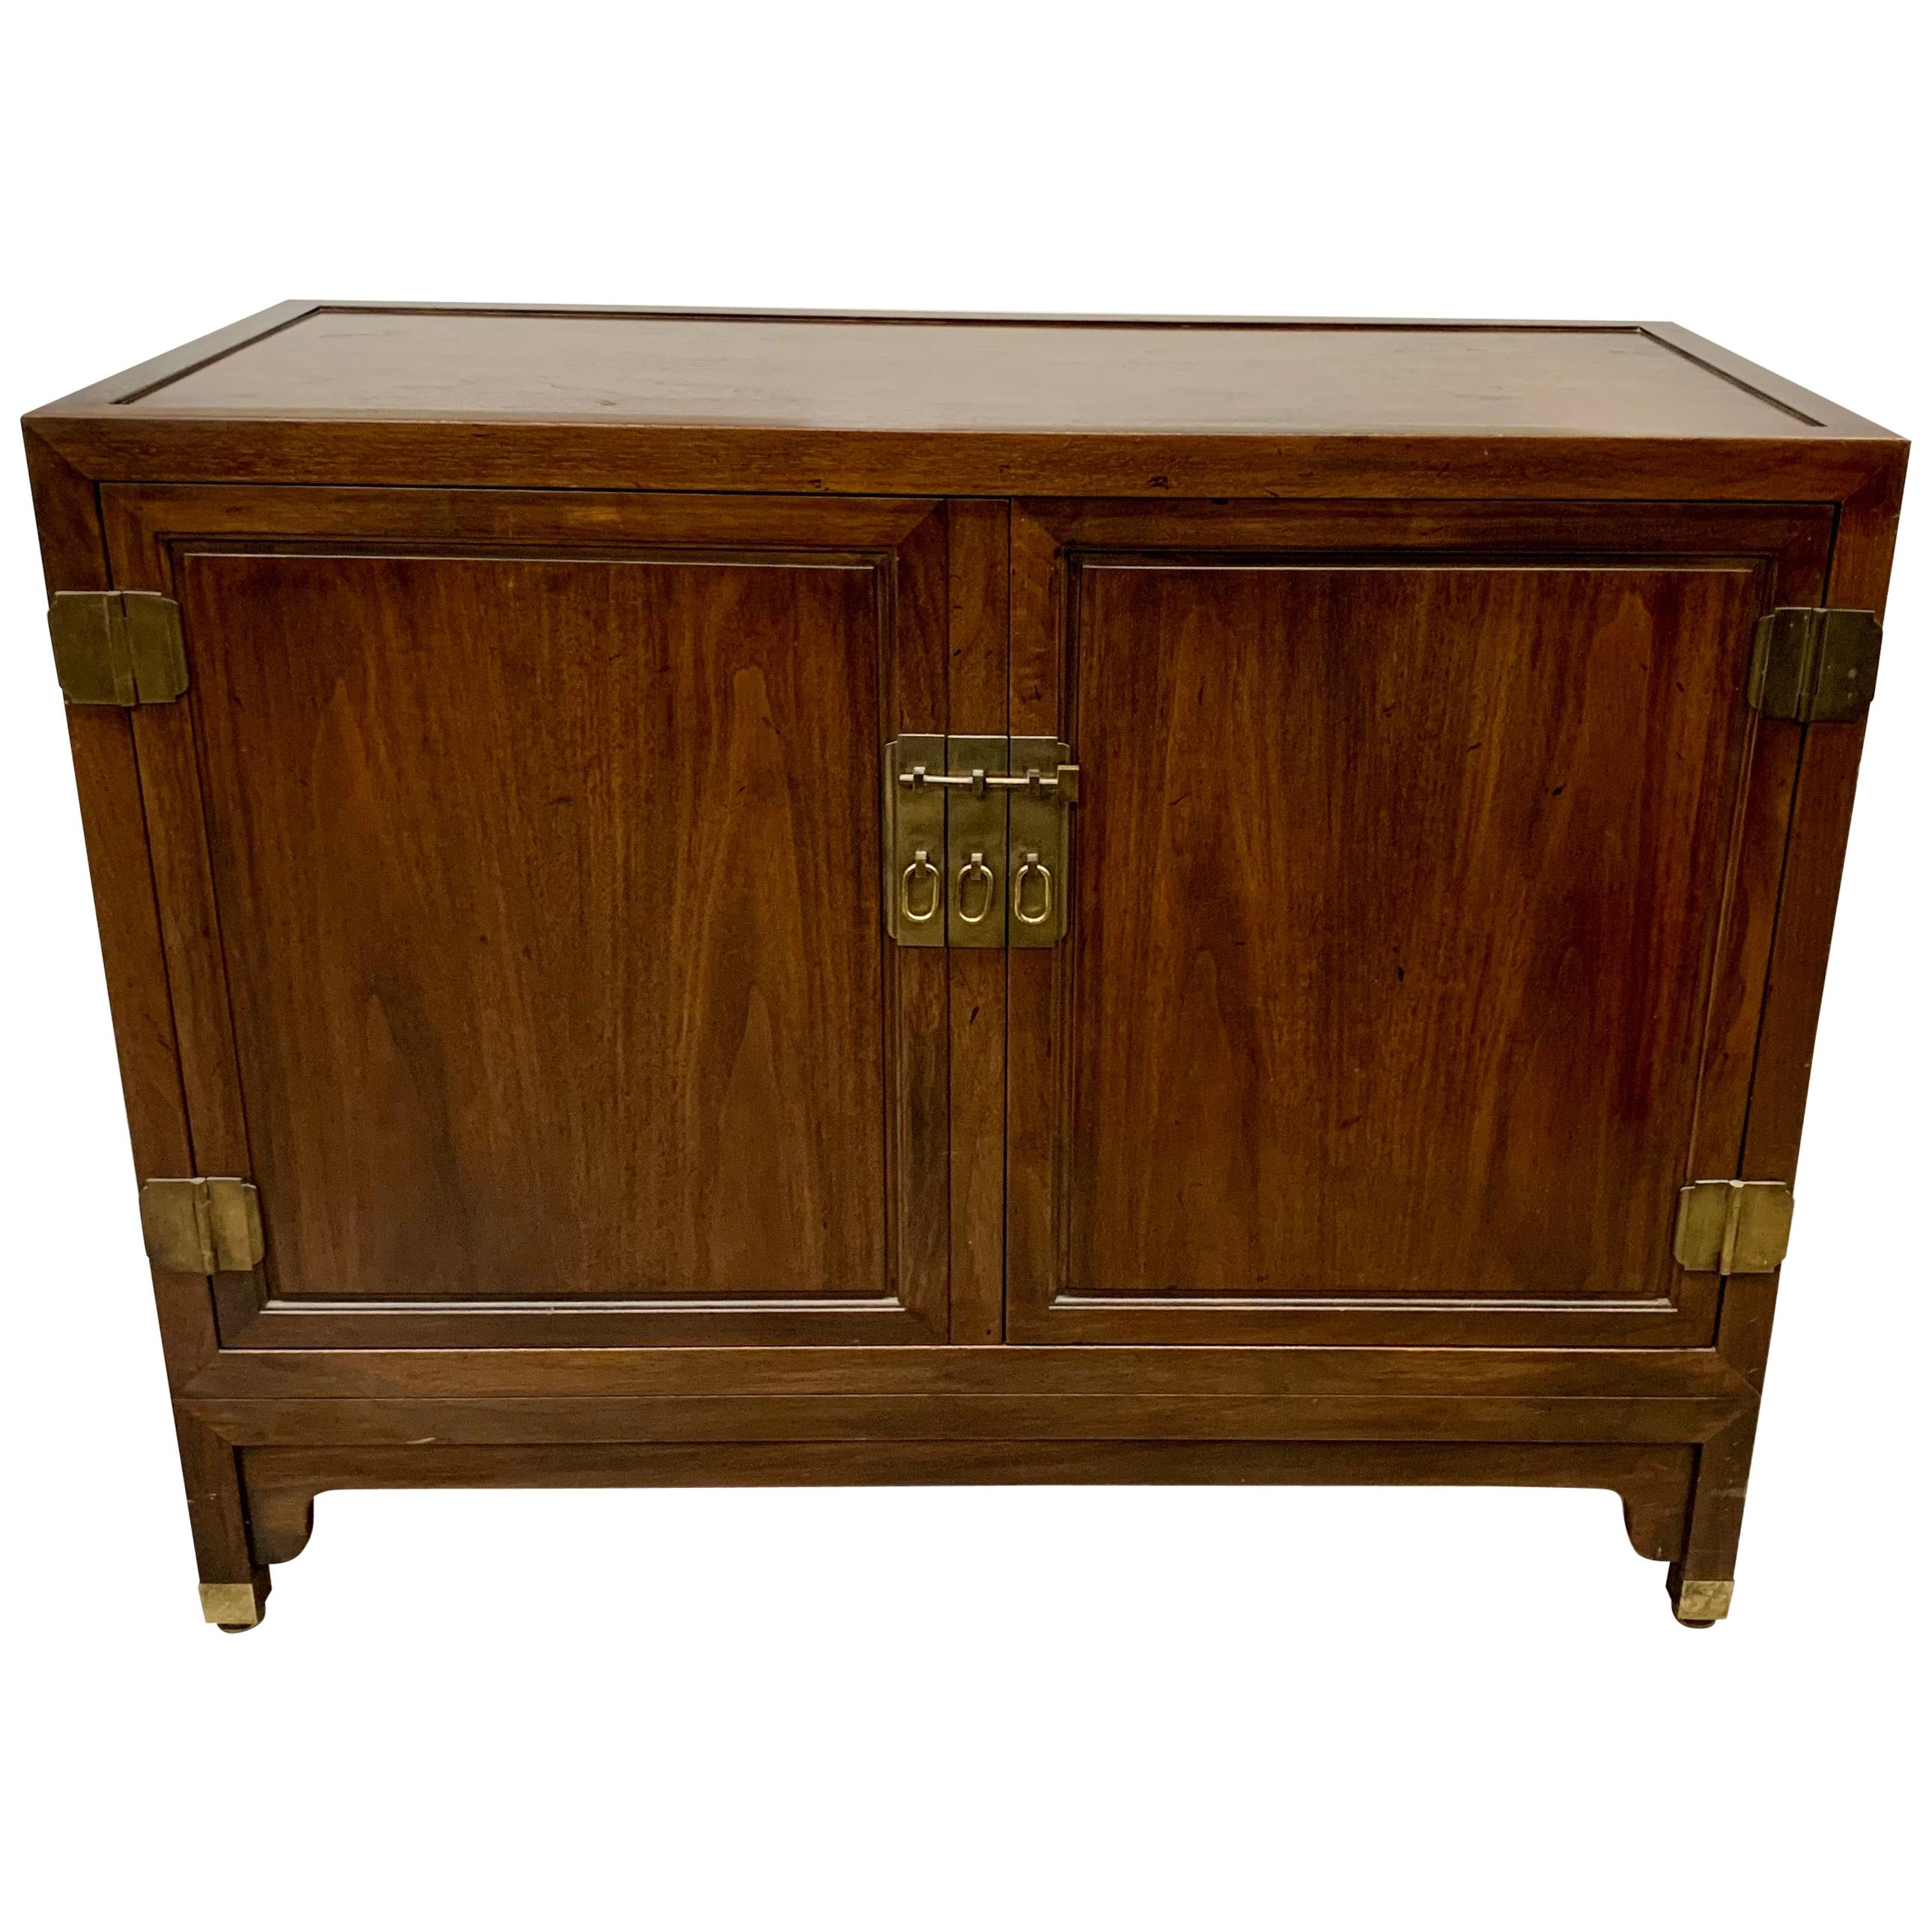 Matching Baker Furniture Walnut Sideboards Cabinets Buffets Bars Credenzas, Pair